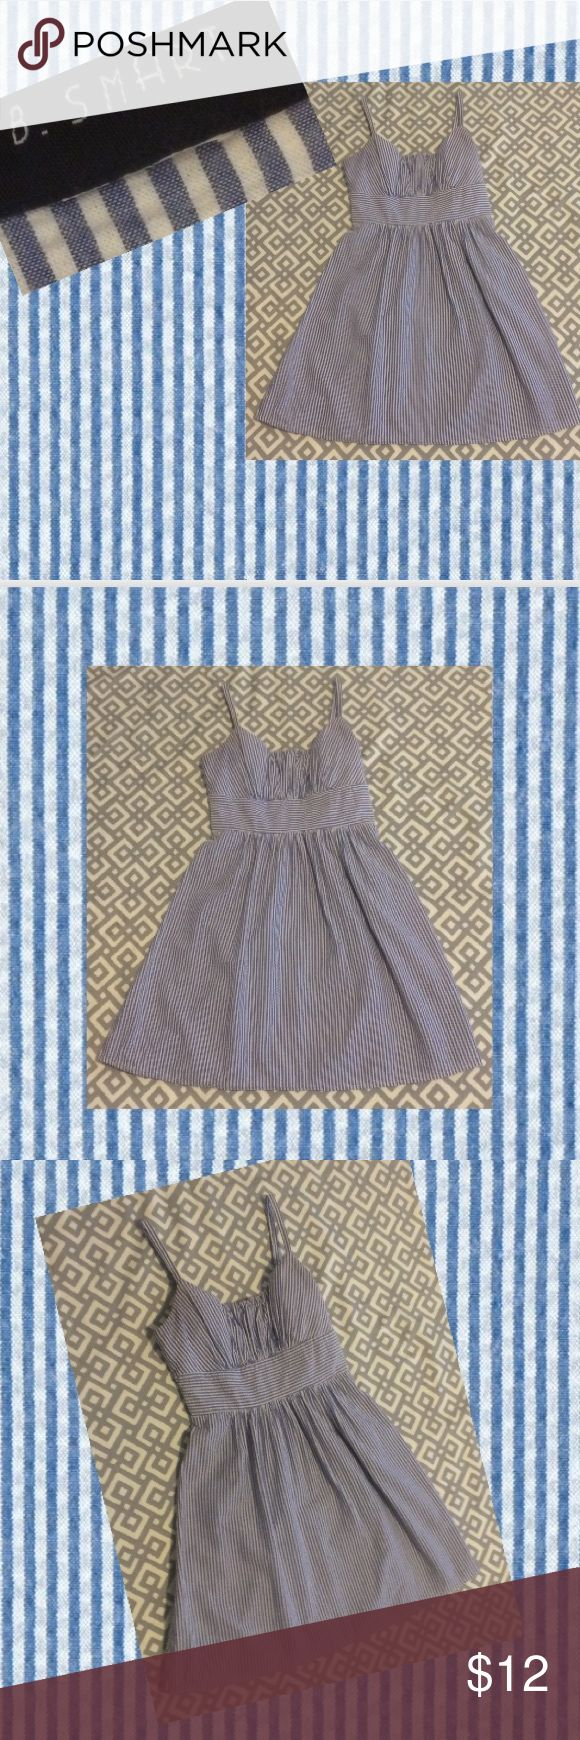 """B. Smart, M seersucker blue & white dress Padded built in bra in the top w/adjustable straps. Dress zips up in the back. Dress is blue & white seersucker; fully lined. Waist is 28"""", bust is 36"""", and length is 26"""" (as measured from below the armpit to the bottom of the dress). B. Smart Dresses"""